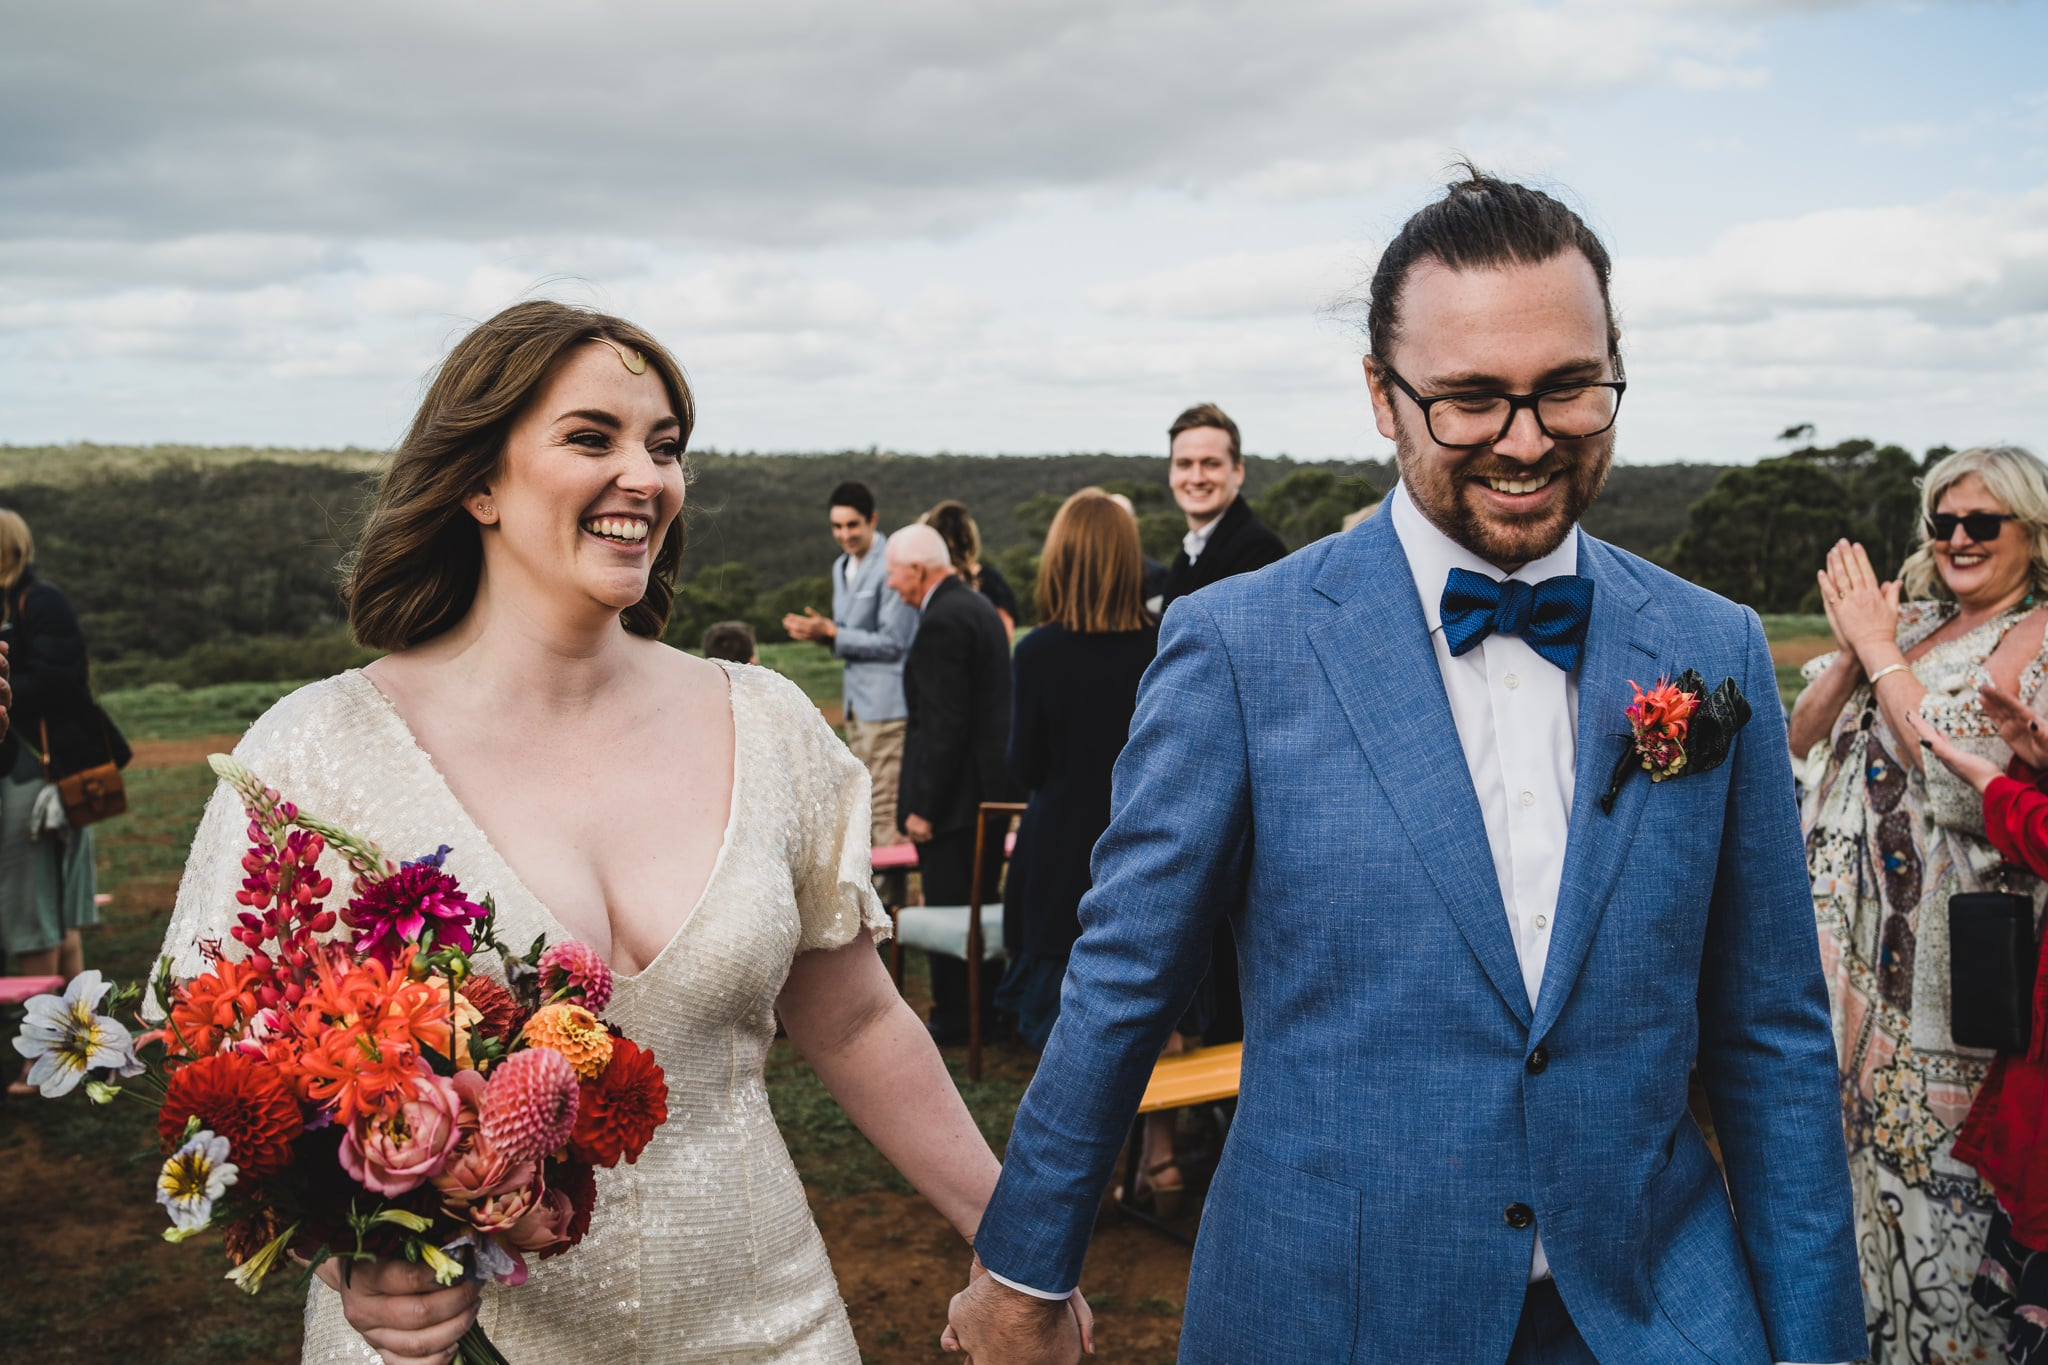 Kate & Brodie walking down the aisle at their Camp Sunnystones wedding festival